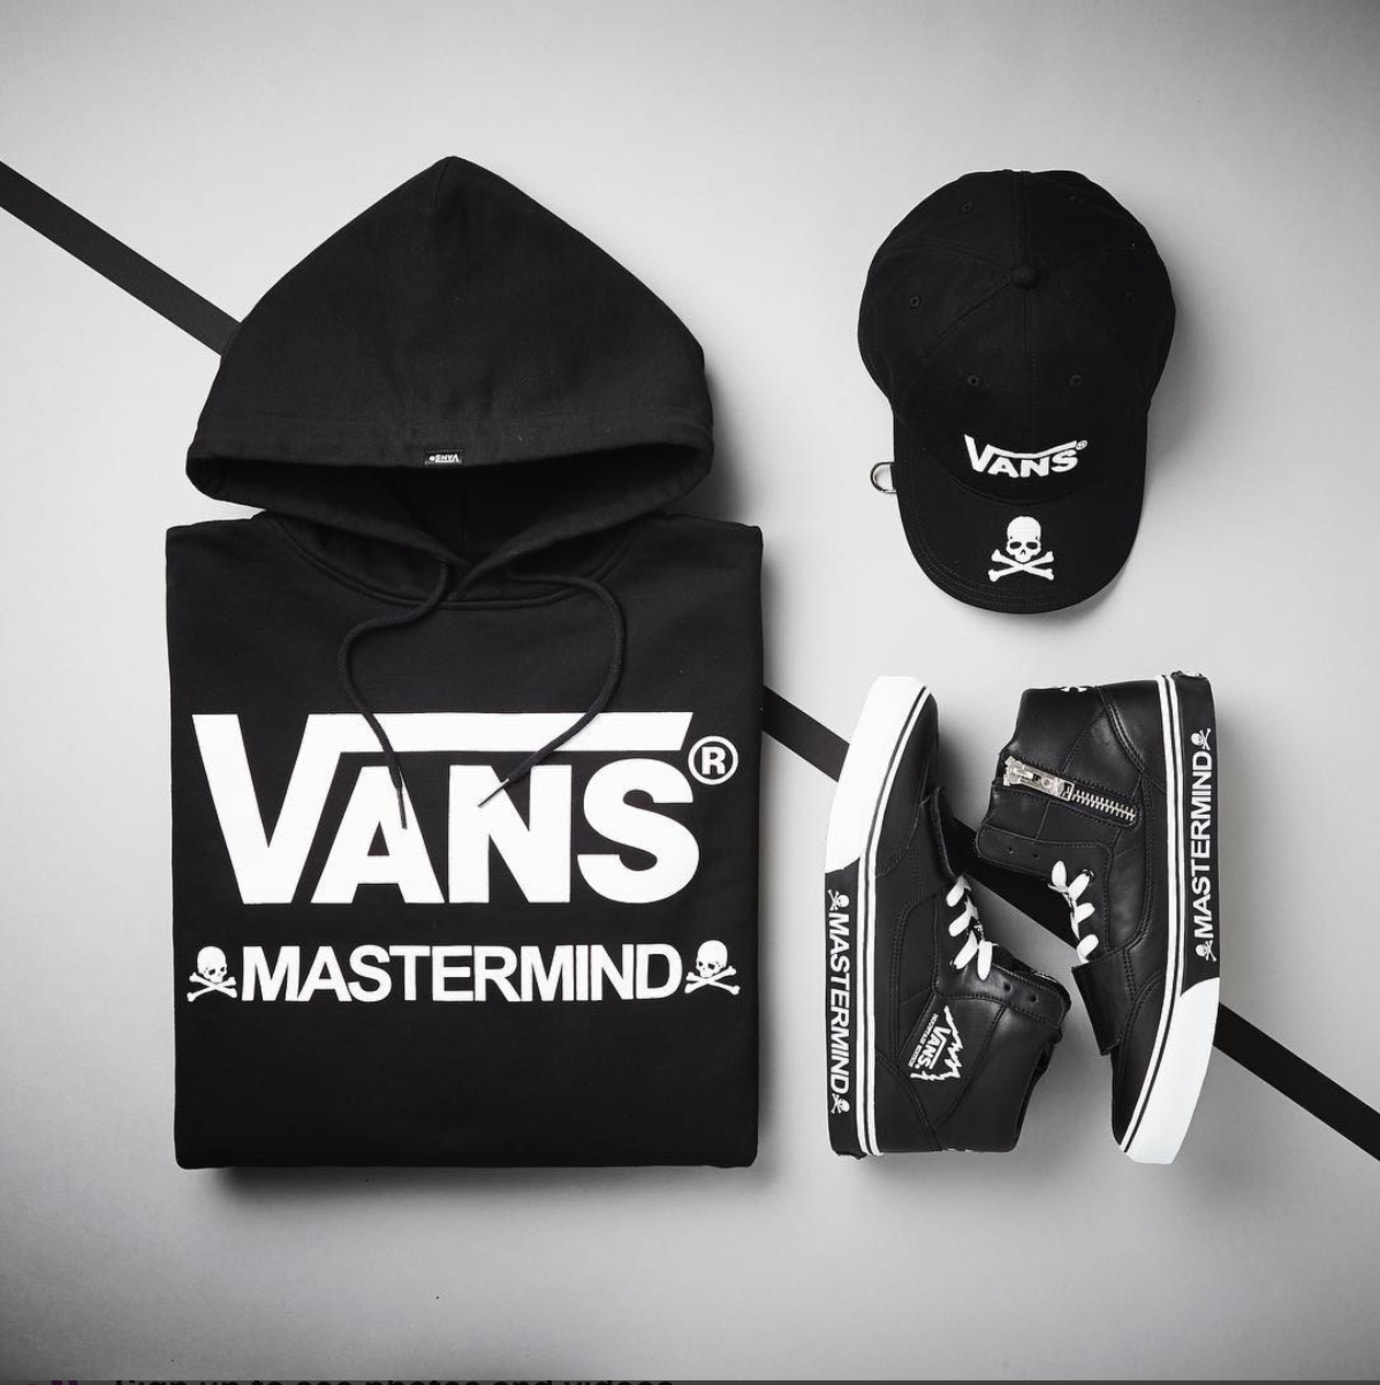 Vans Japan x Mastermind Collaboration